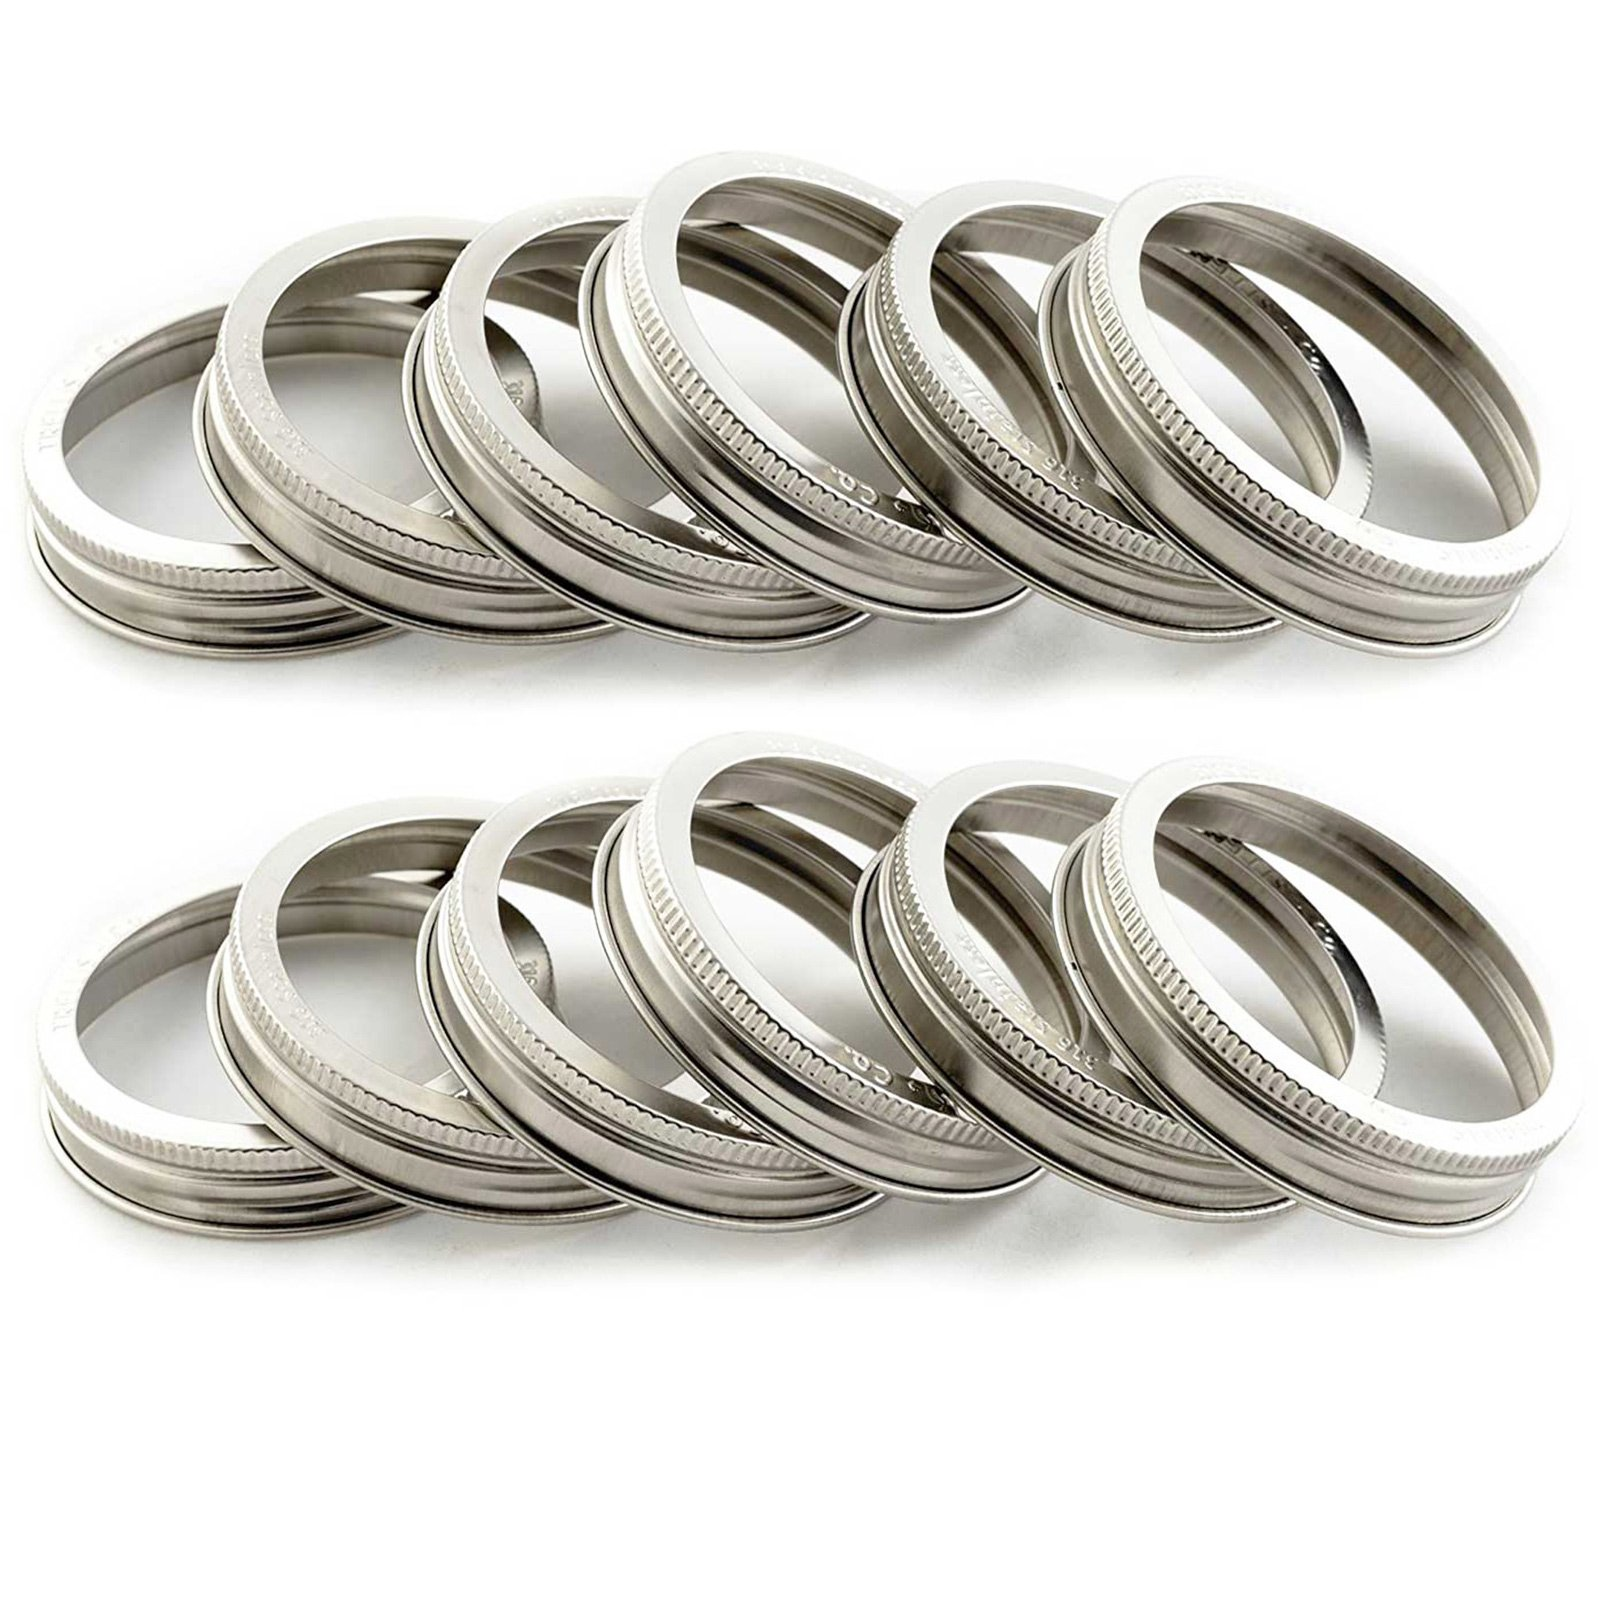 T&Co. STAMPED Stainless Steel Wide Mouth Mason Jar Replacement Rings/Bands/Tops - Durable & Rustproof - Set of 12 - For Pickling, Canning, Storage